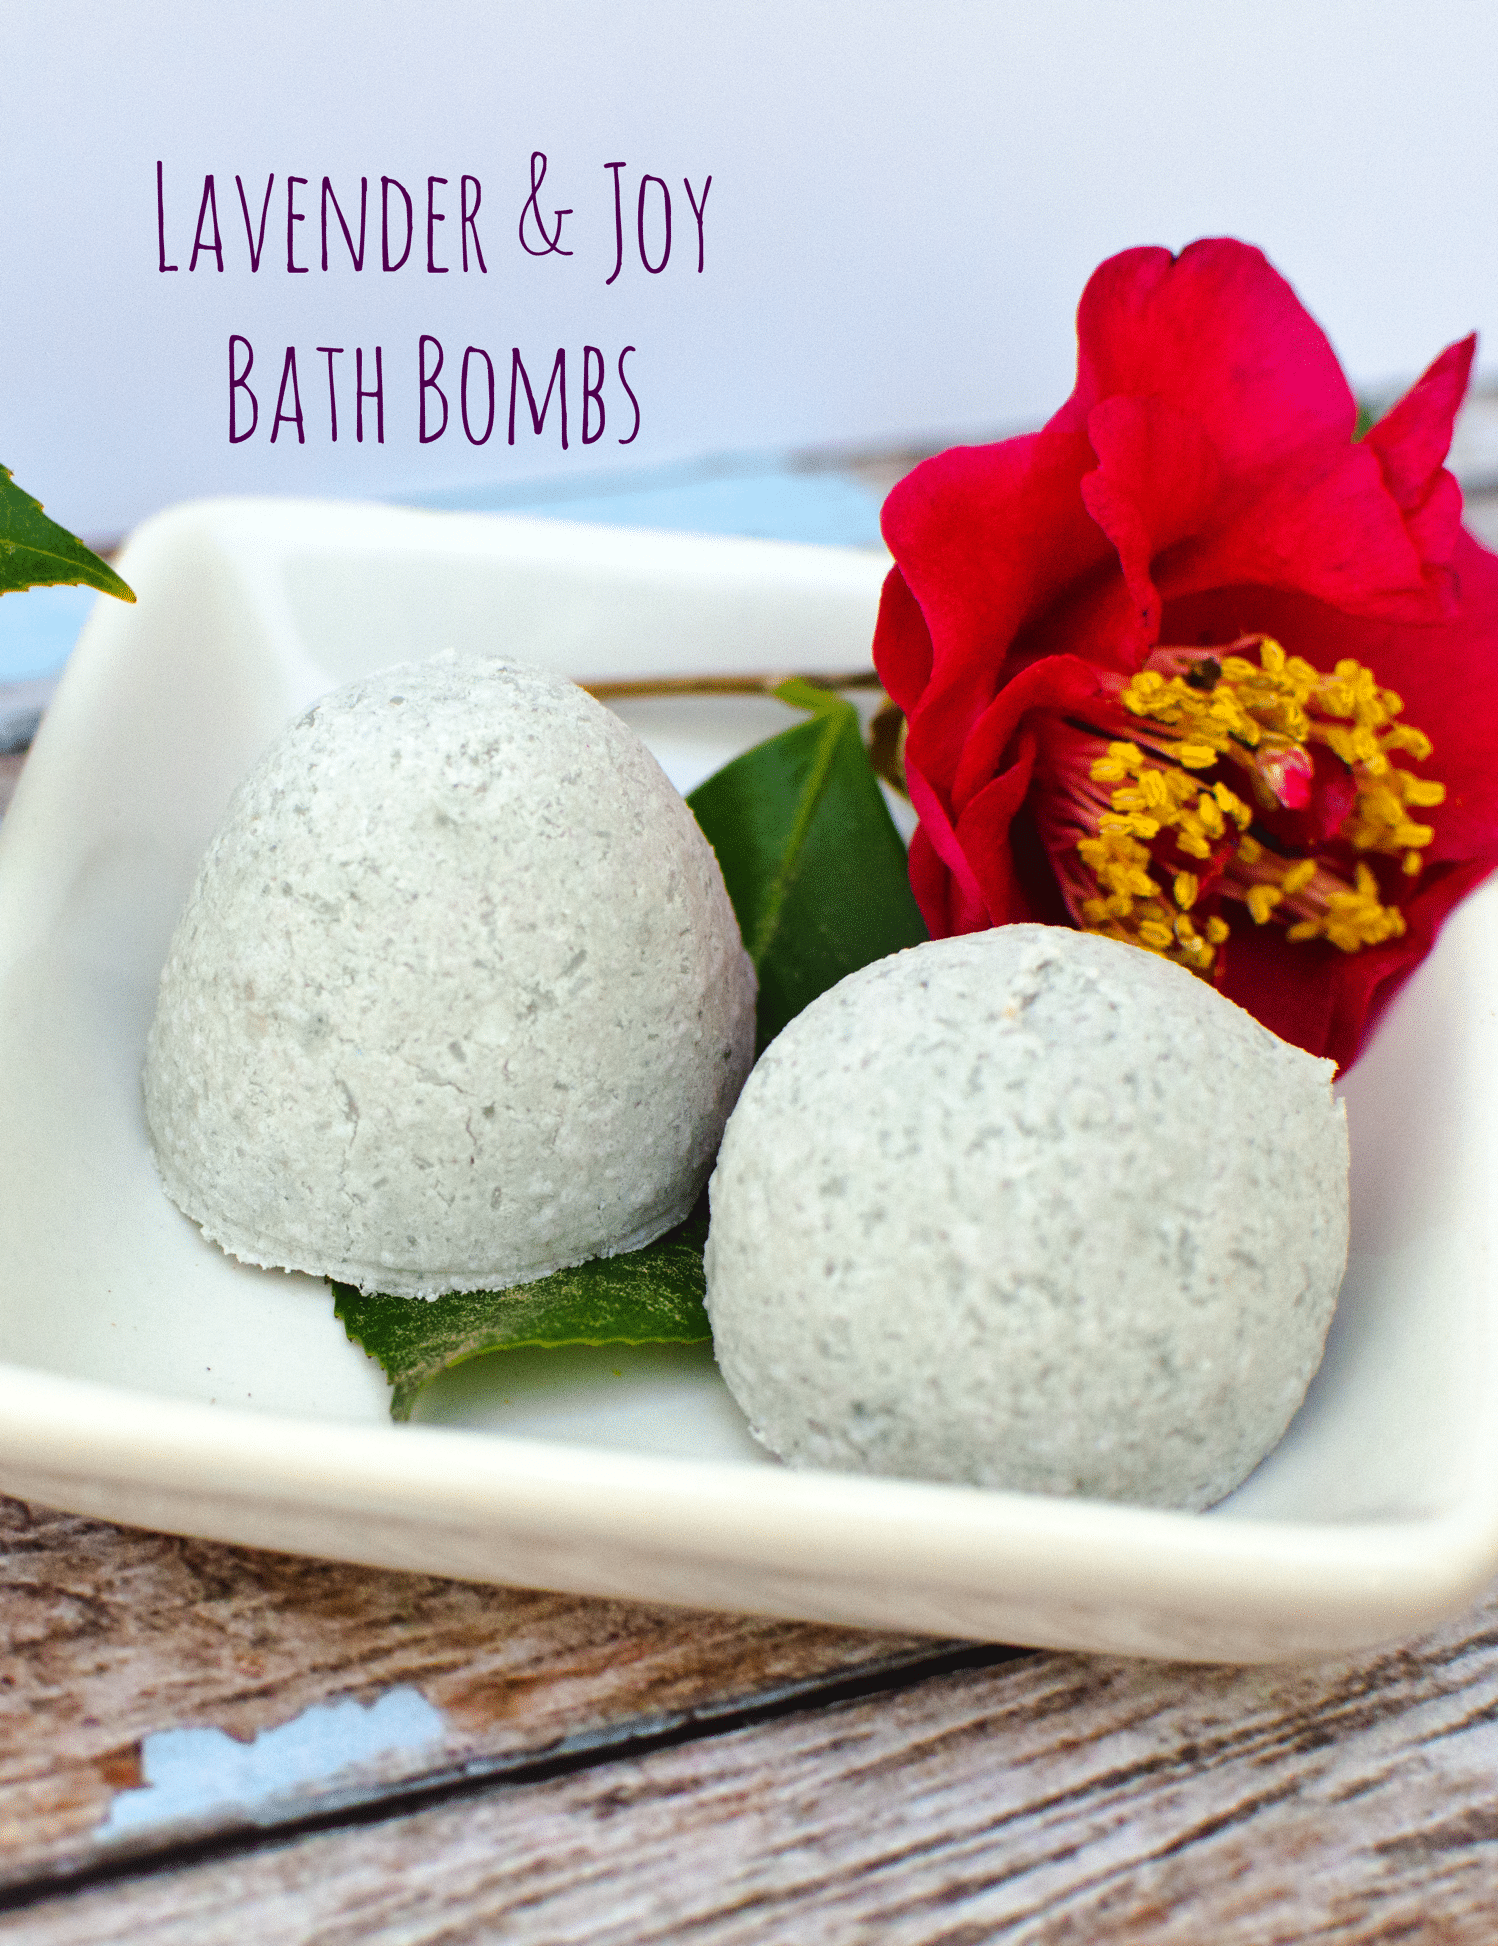 Lavender and Joy Fragrant Fizzie Bath Bombs for Mother's Day